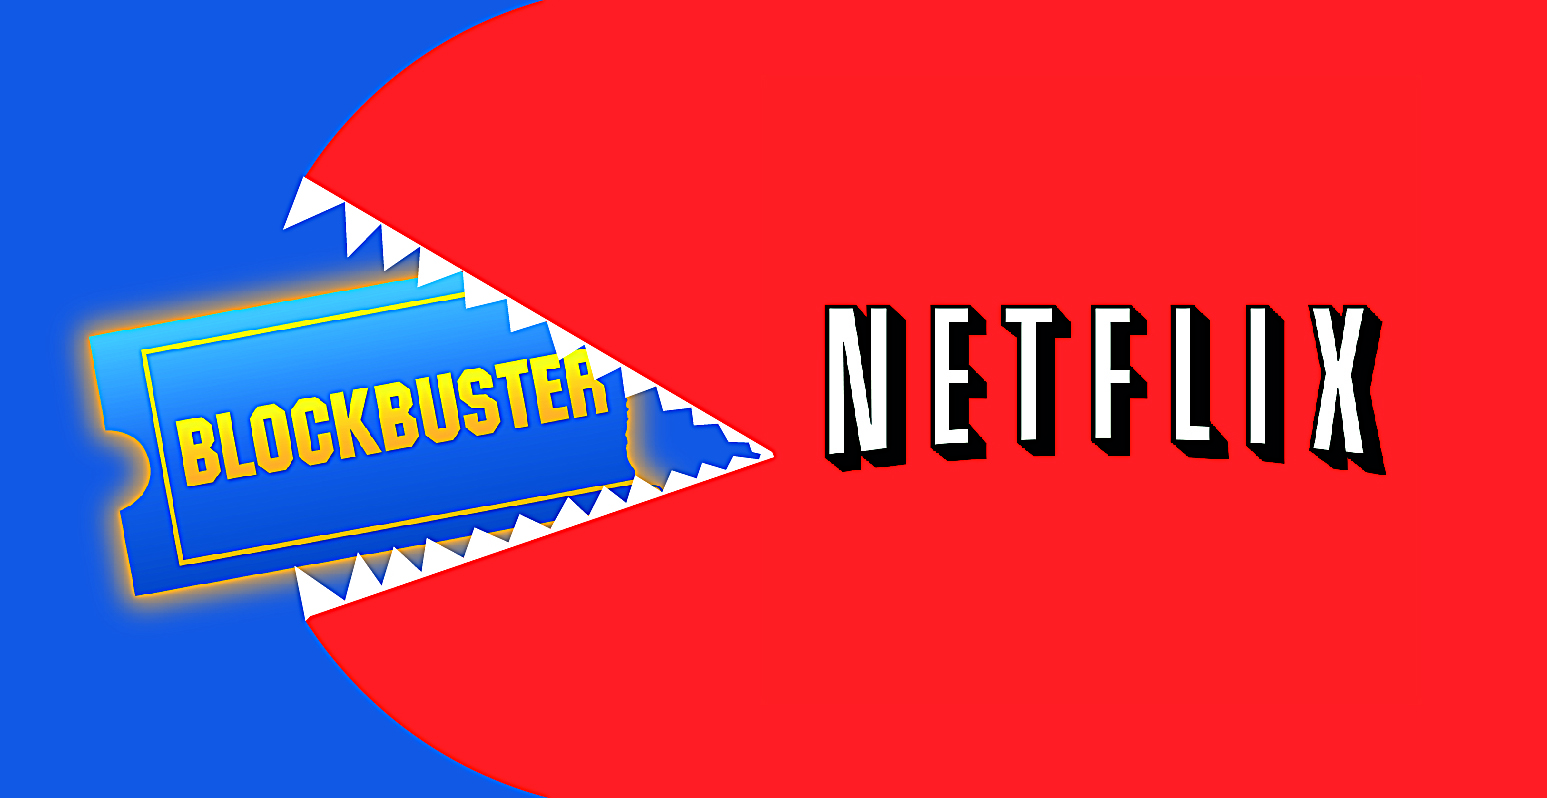 blockbuster vs netflix which will win Dish network acquired the assets of blockbuster in april 2011 through a bankruptcy auction we recognized that the entertainment landscape was changing, and we believe that blockbuster will continue to evolve its online delivery.